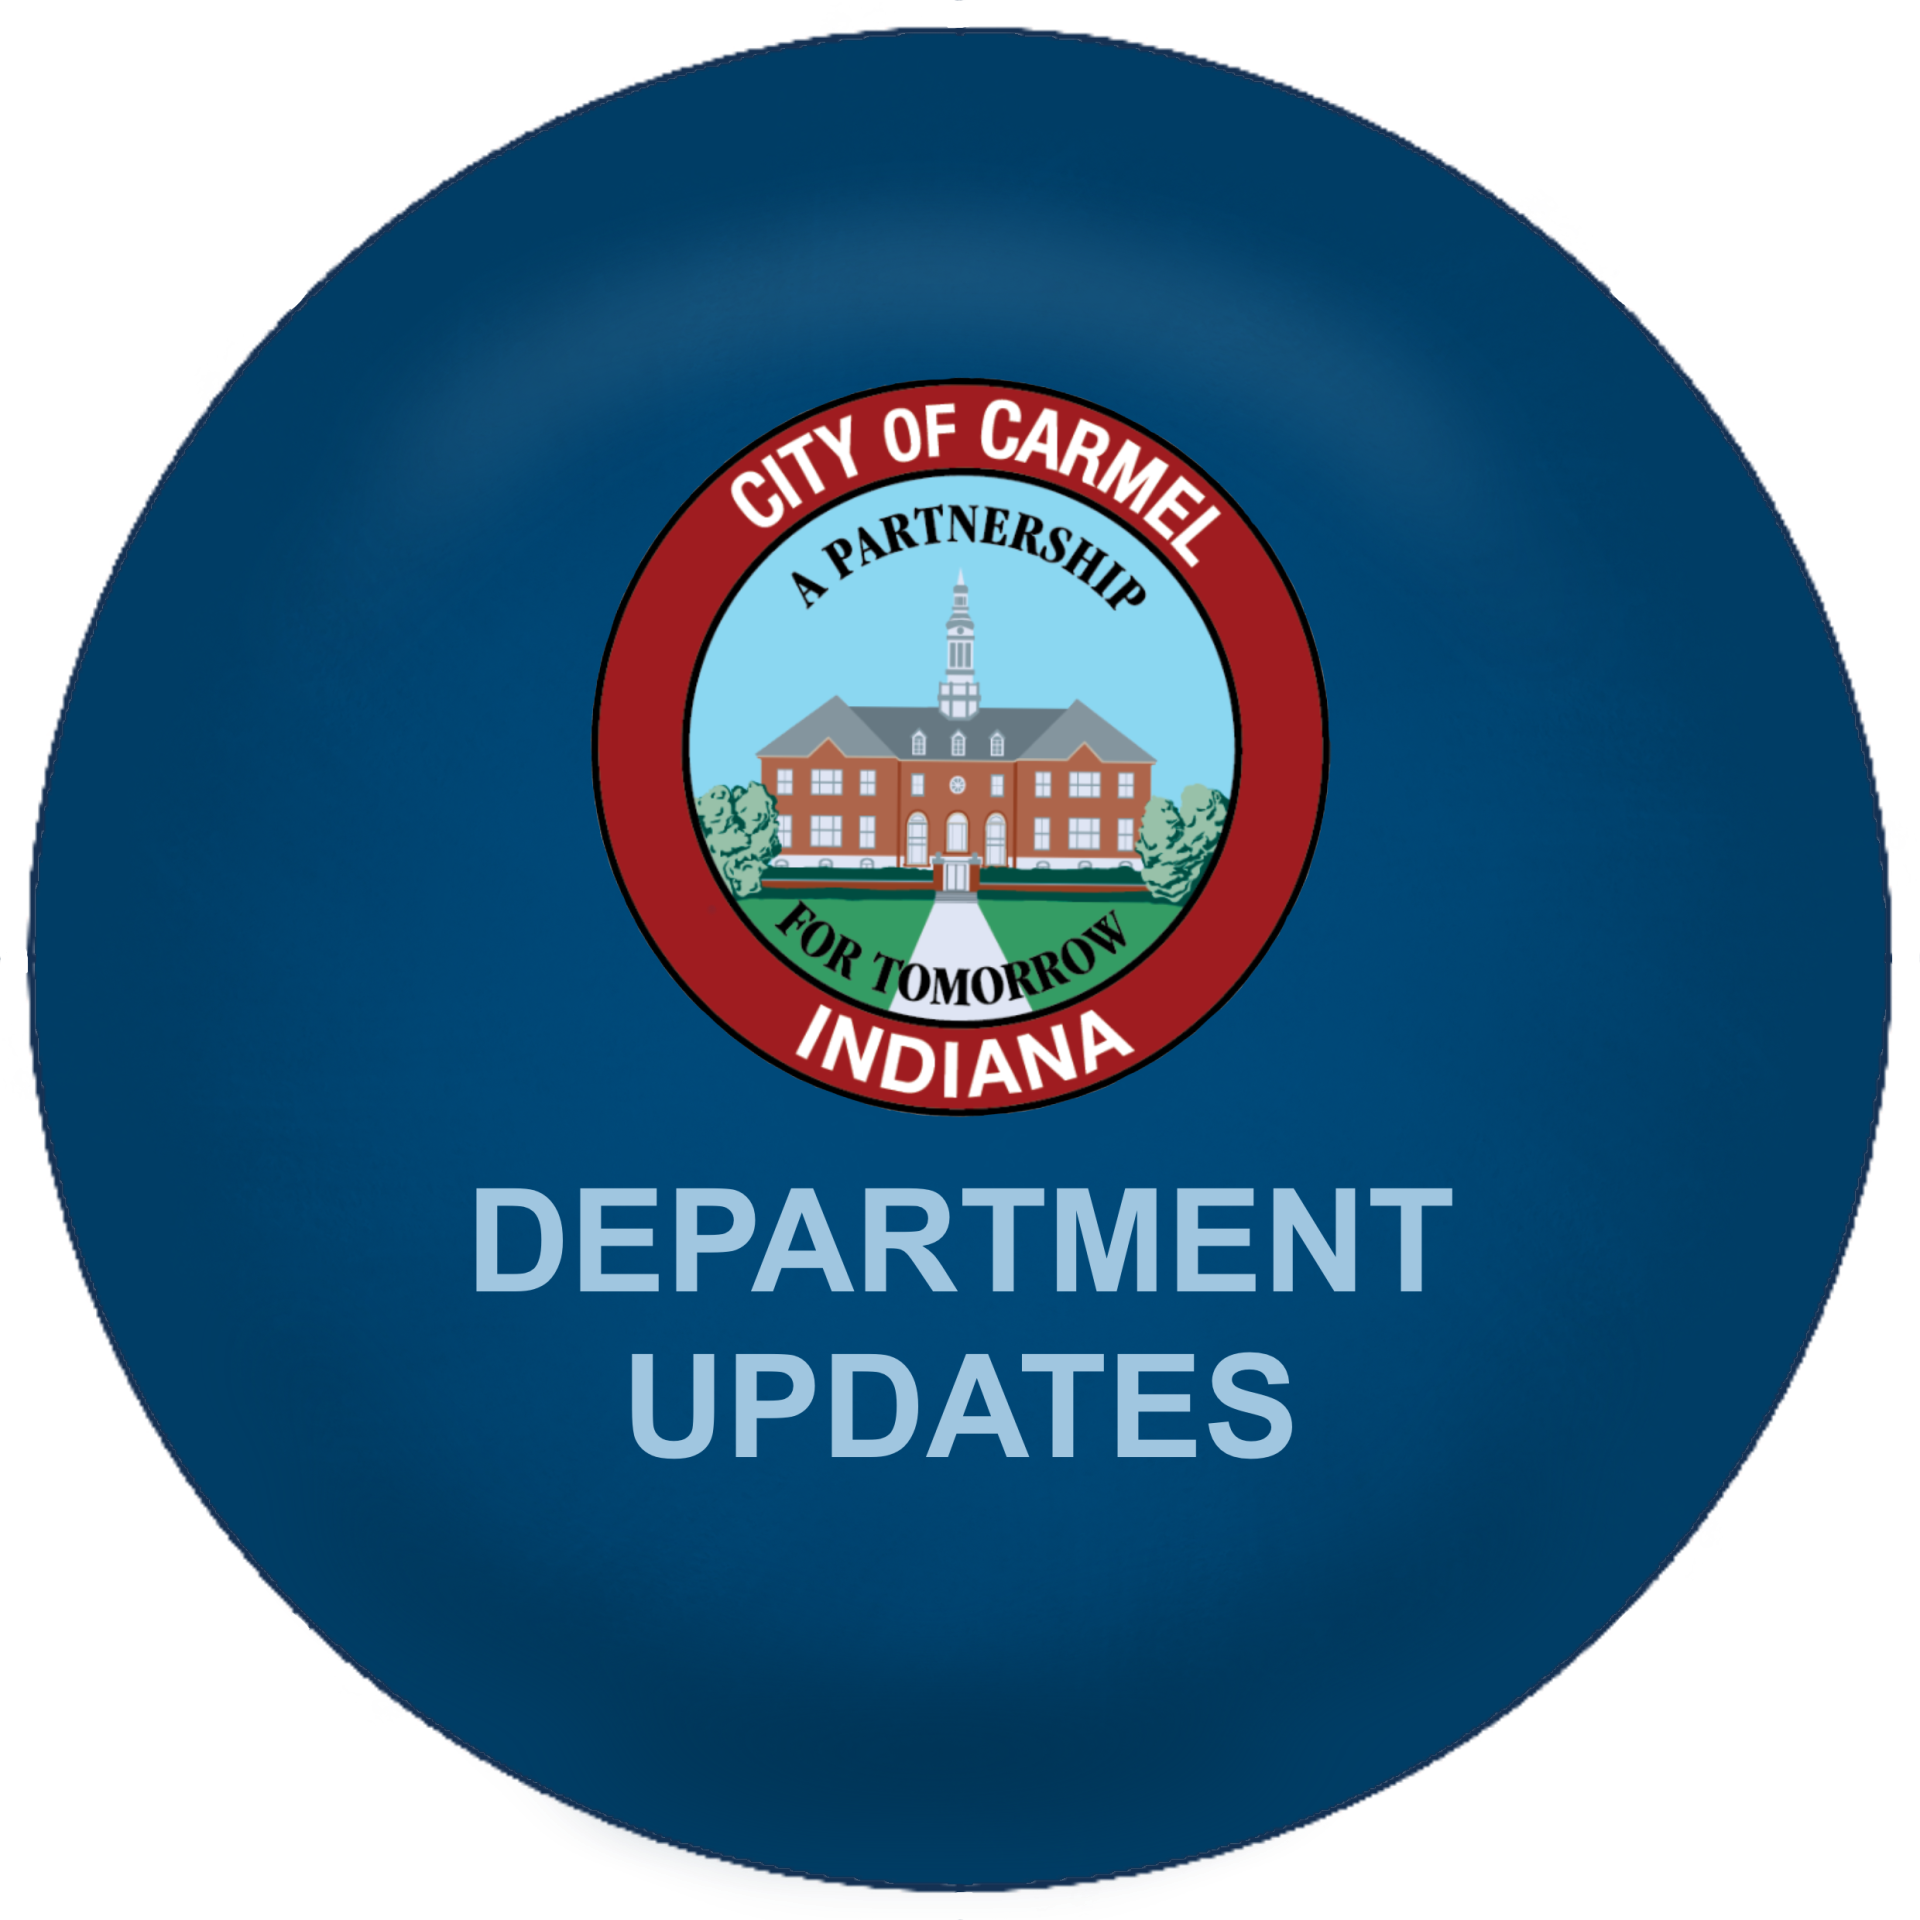 DepartmentUpdates